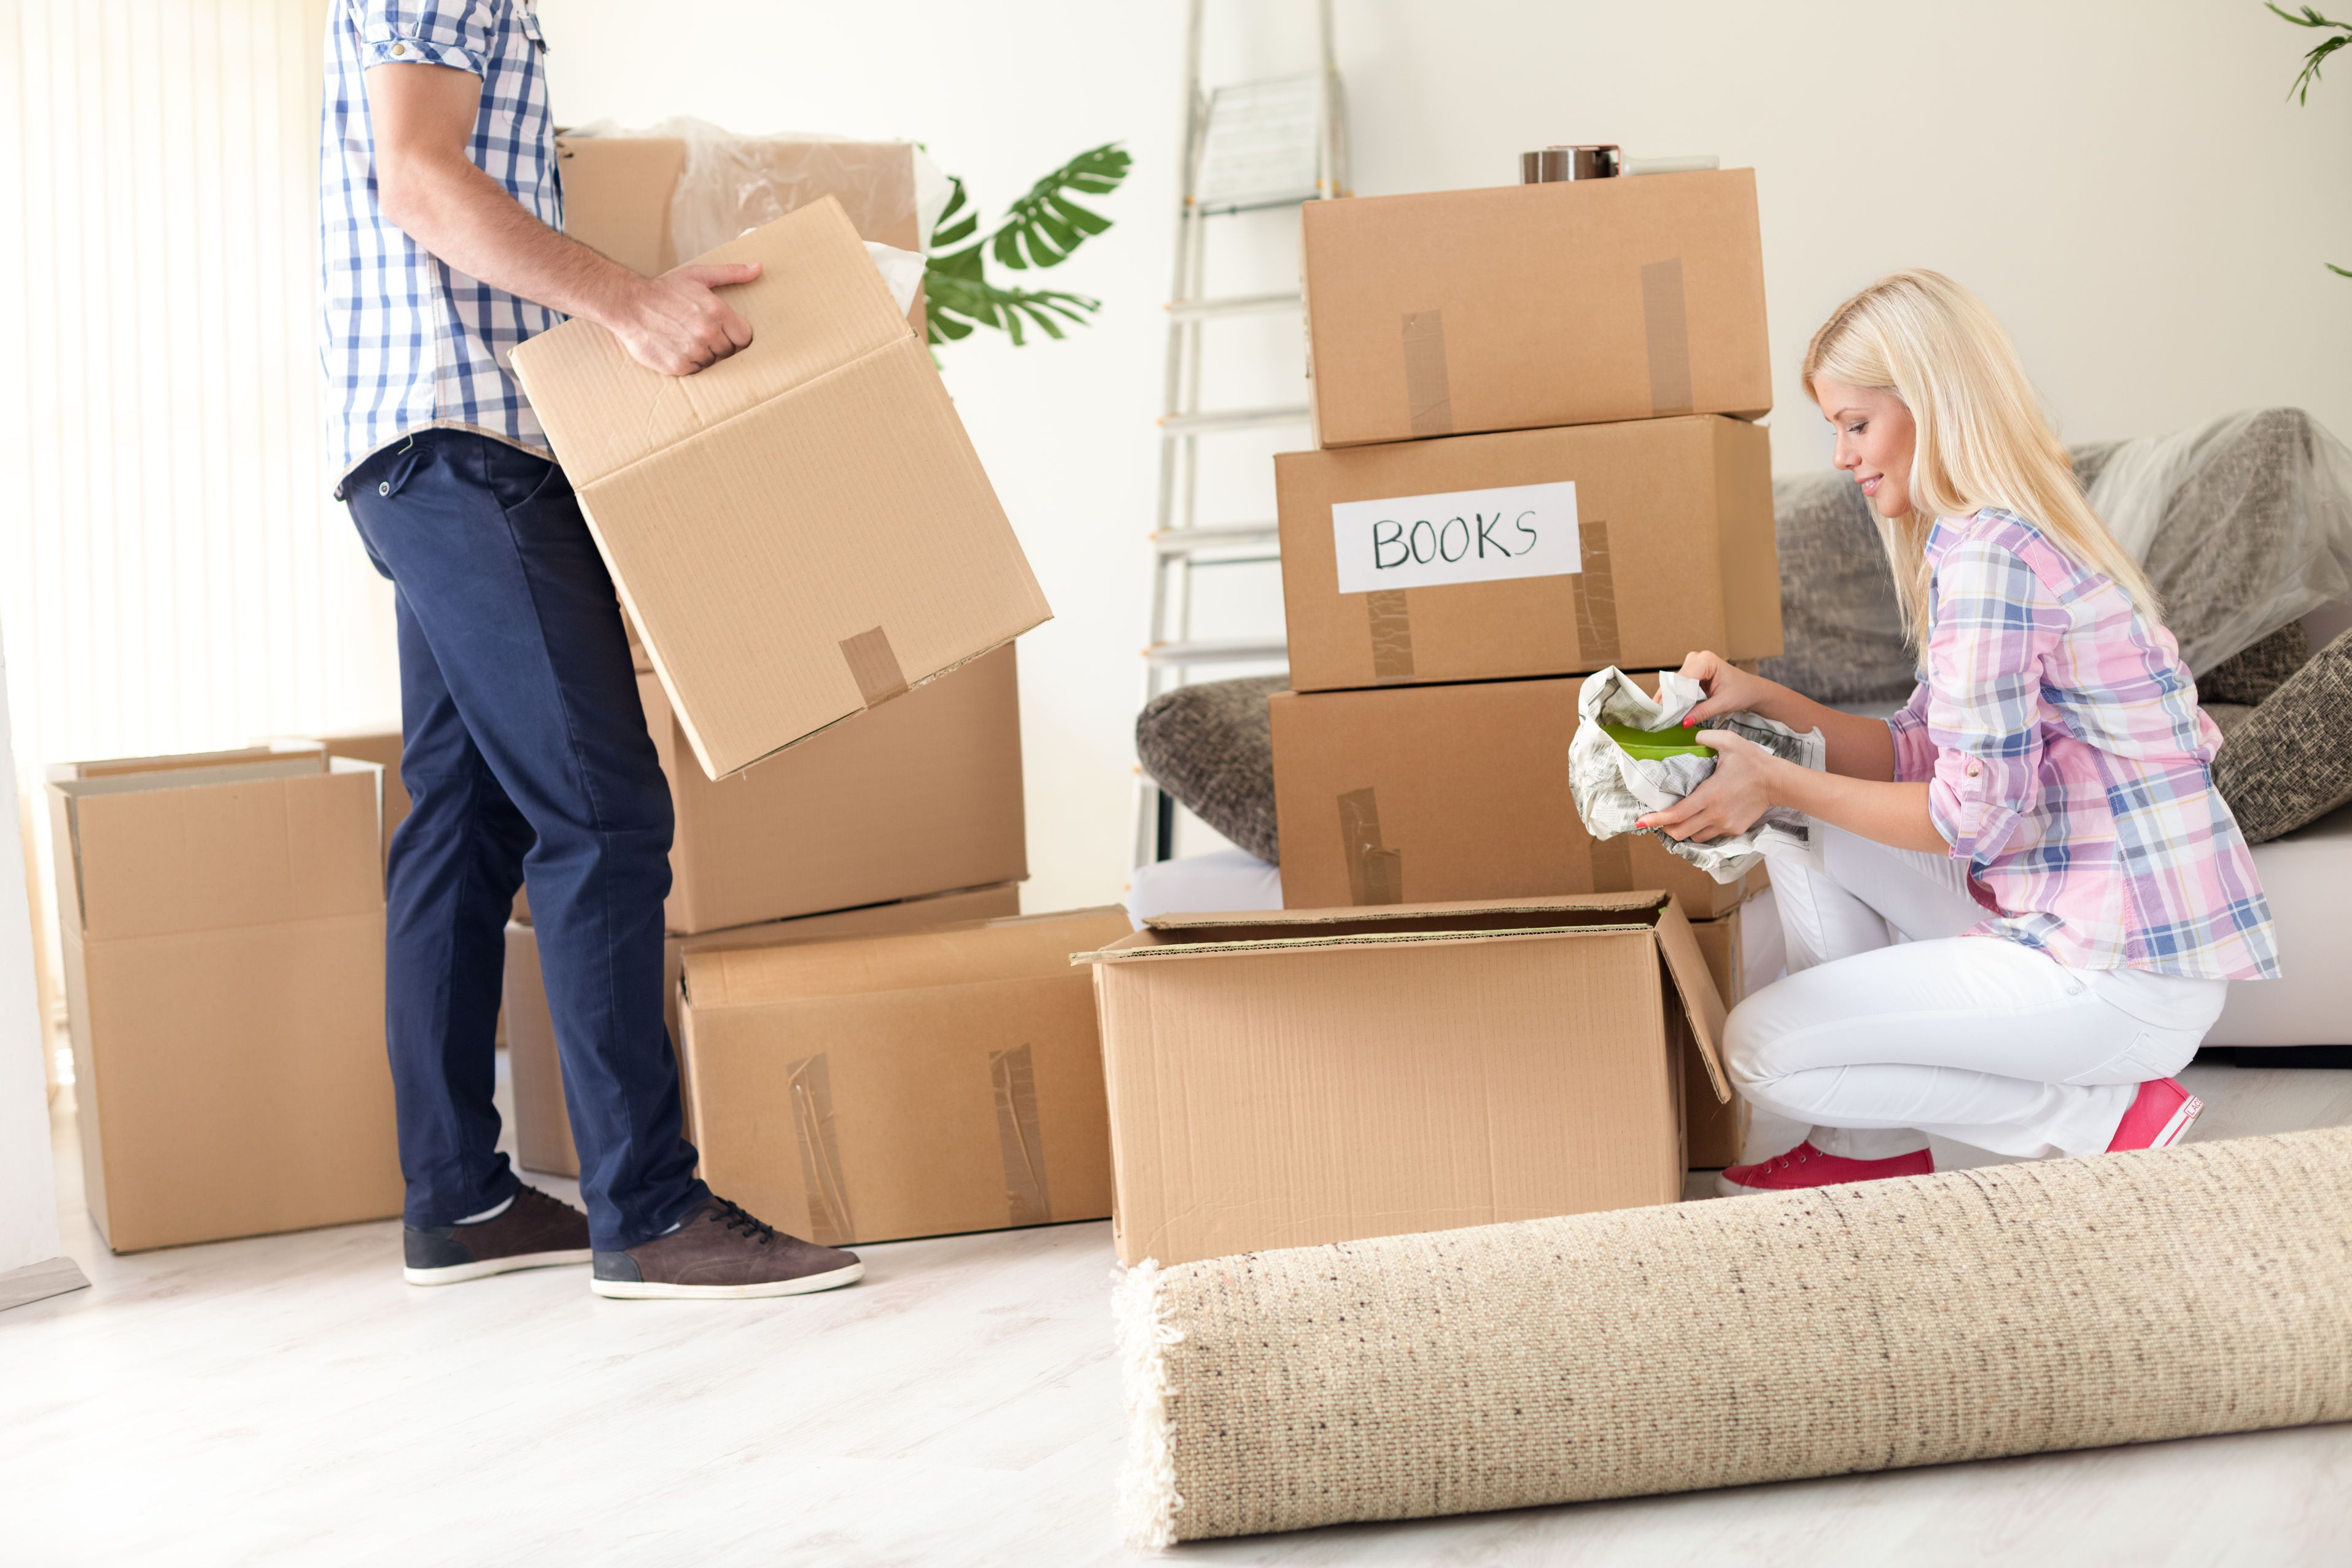 If You Are In Search Of Local Moving Company Then You Should Rely On Proficient Local Moving Company Such Packers And Movers Moving And Storage Moving Company